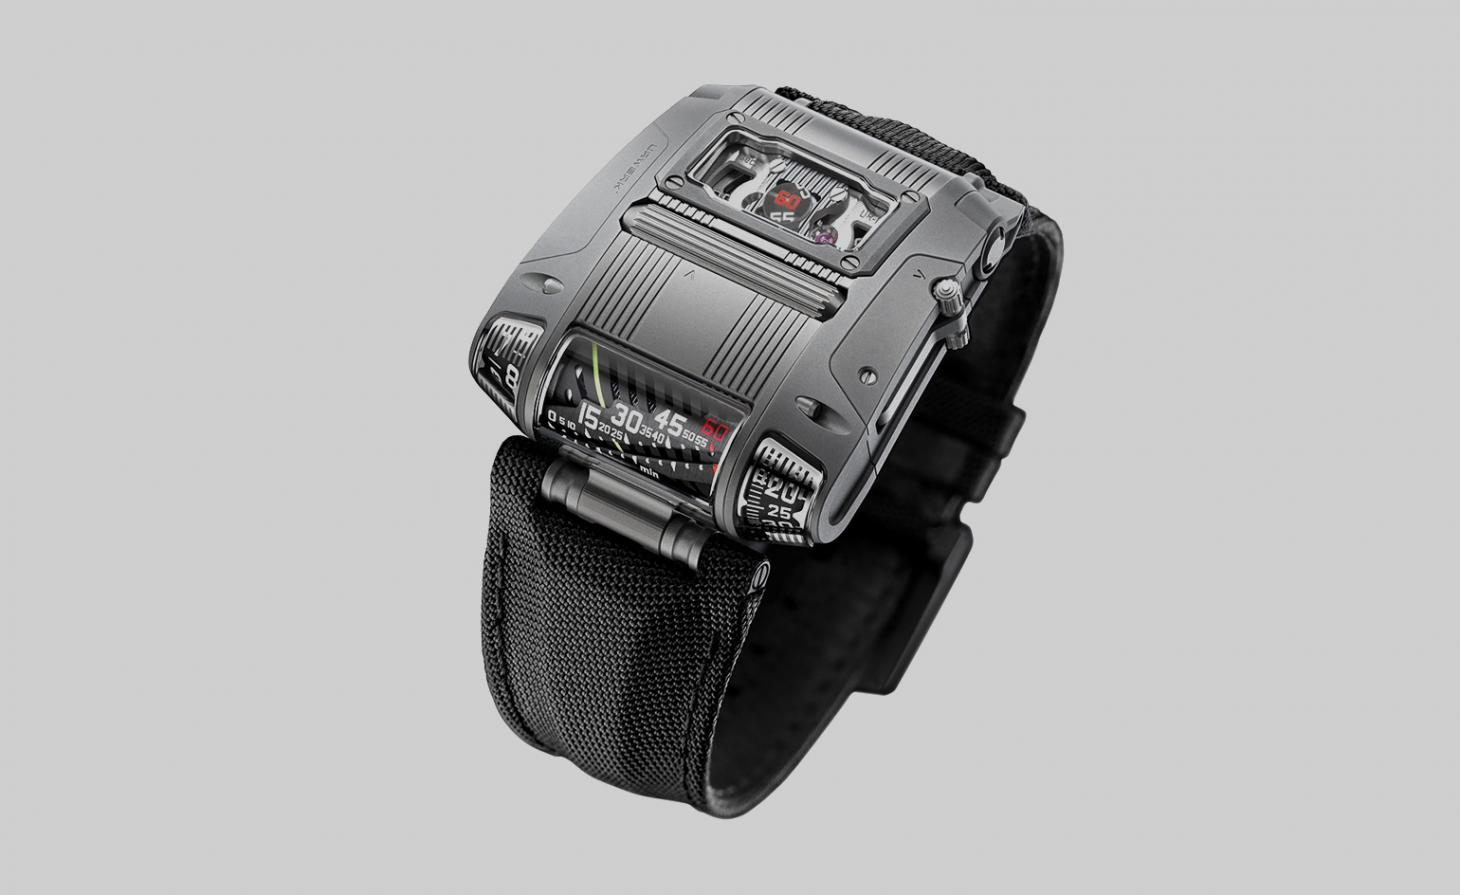 UR-111C watch by Urwerk